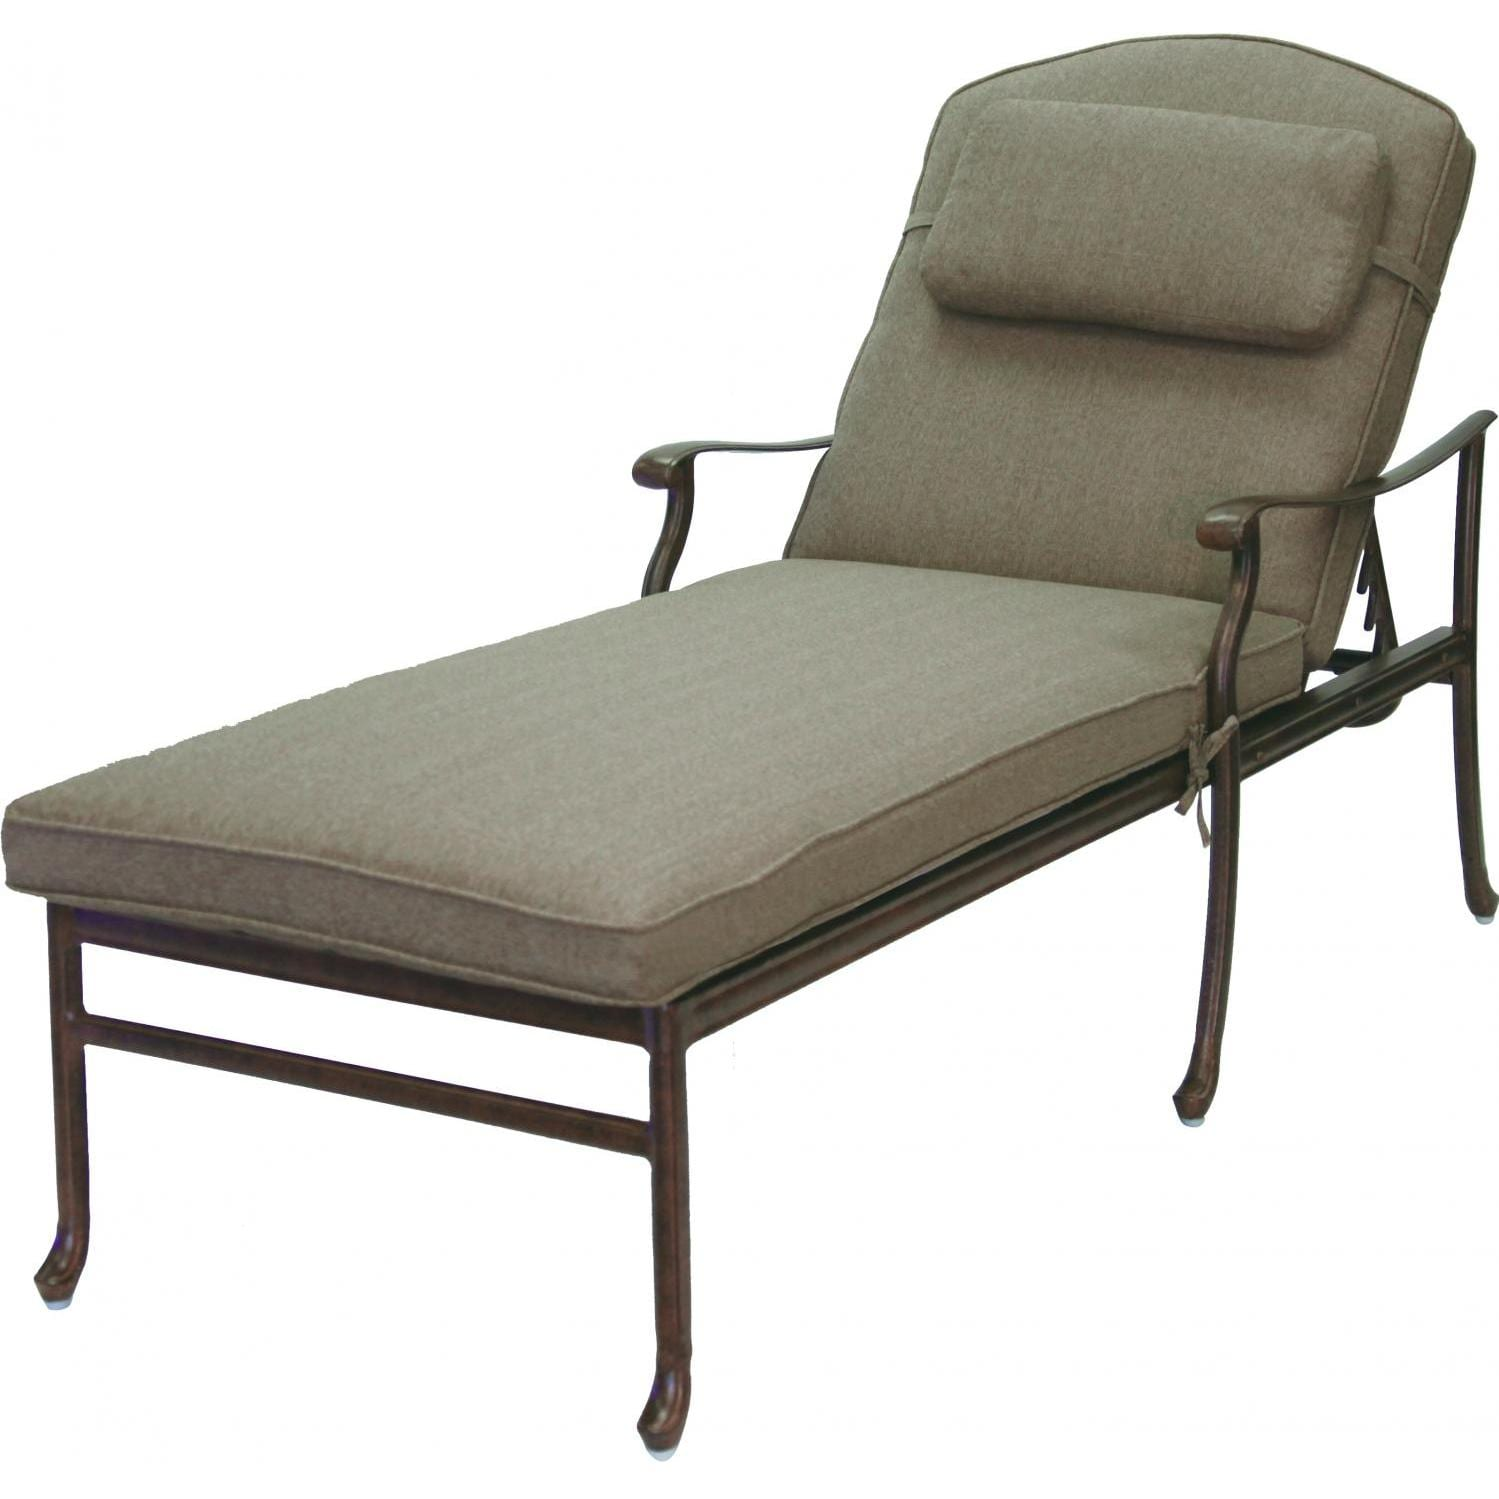 Darlee sedona 3 piece patio chaise lounge set cast for Chaise aluminium